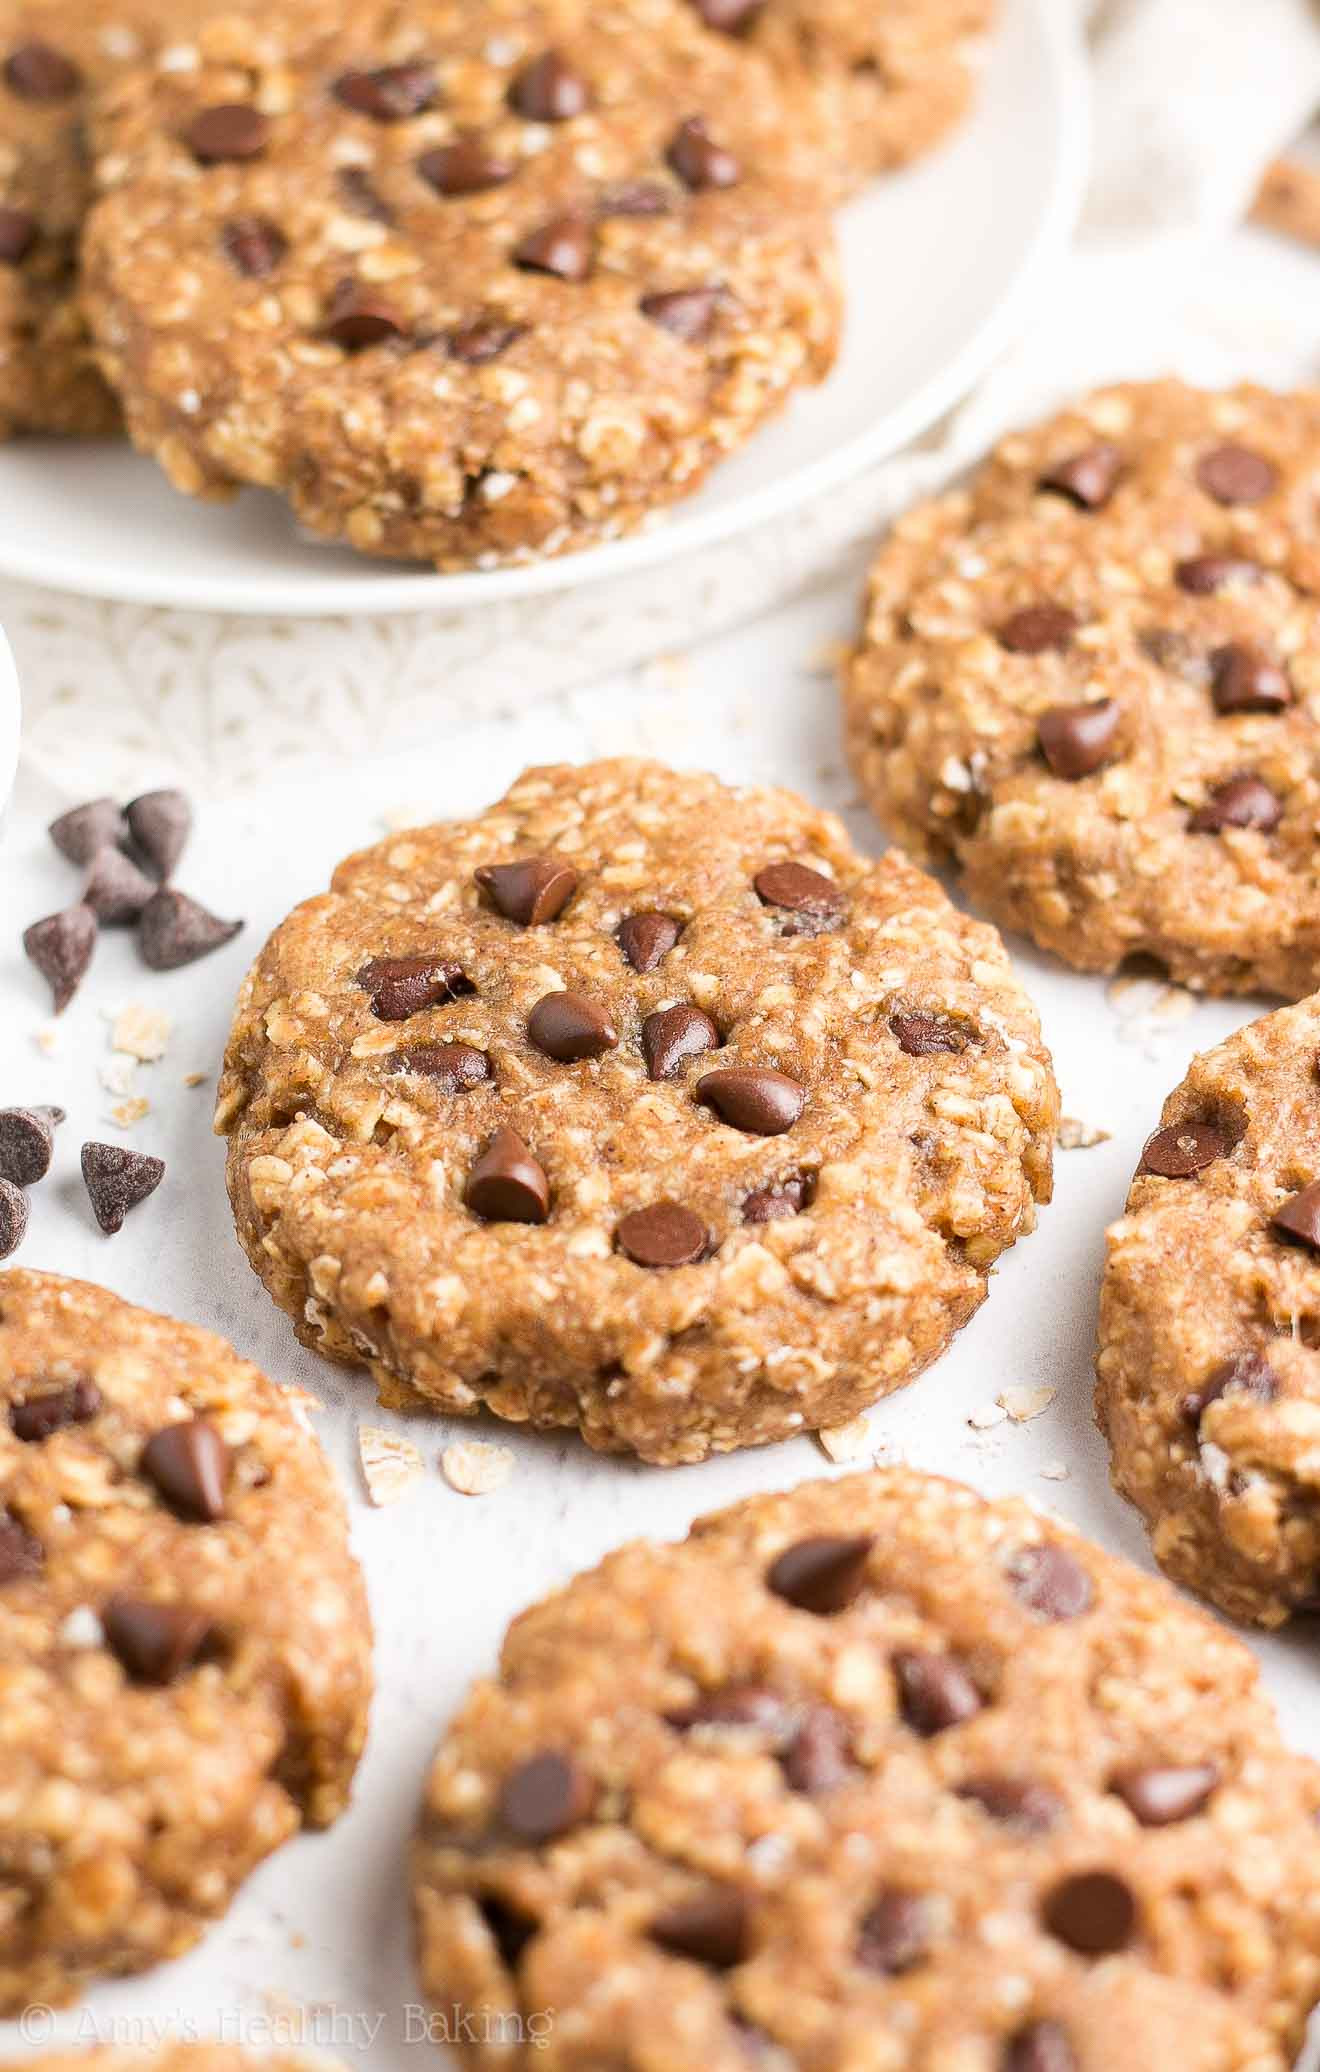 Healthy Peanut Butter Oatmeal Cookies  Healthy Chocolate Chip Peanut Butter Oatmeal Breakfast